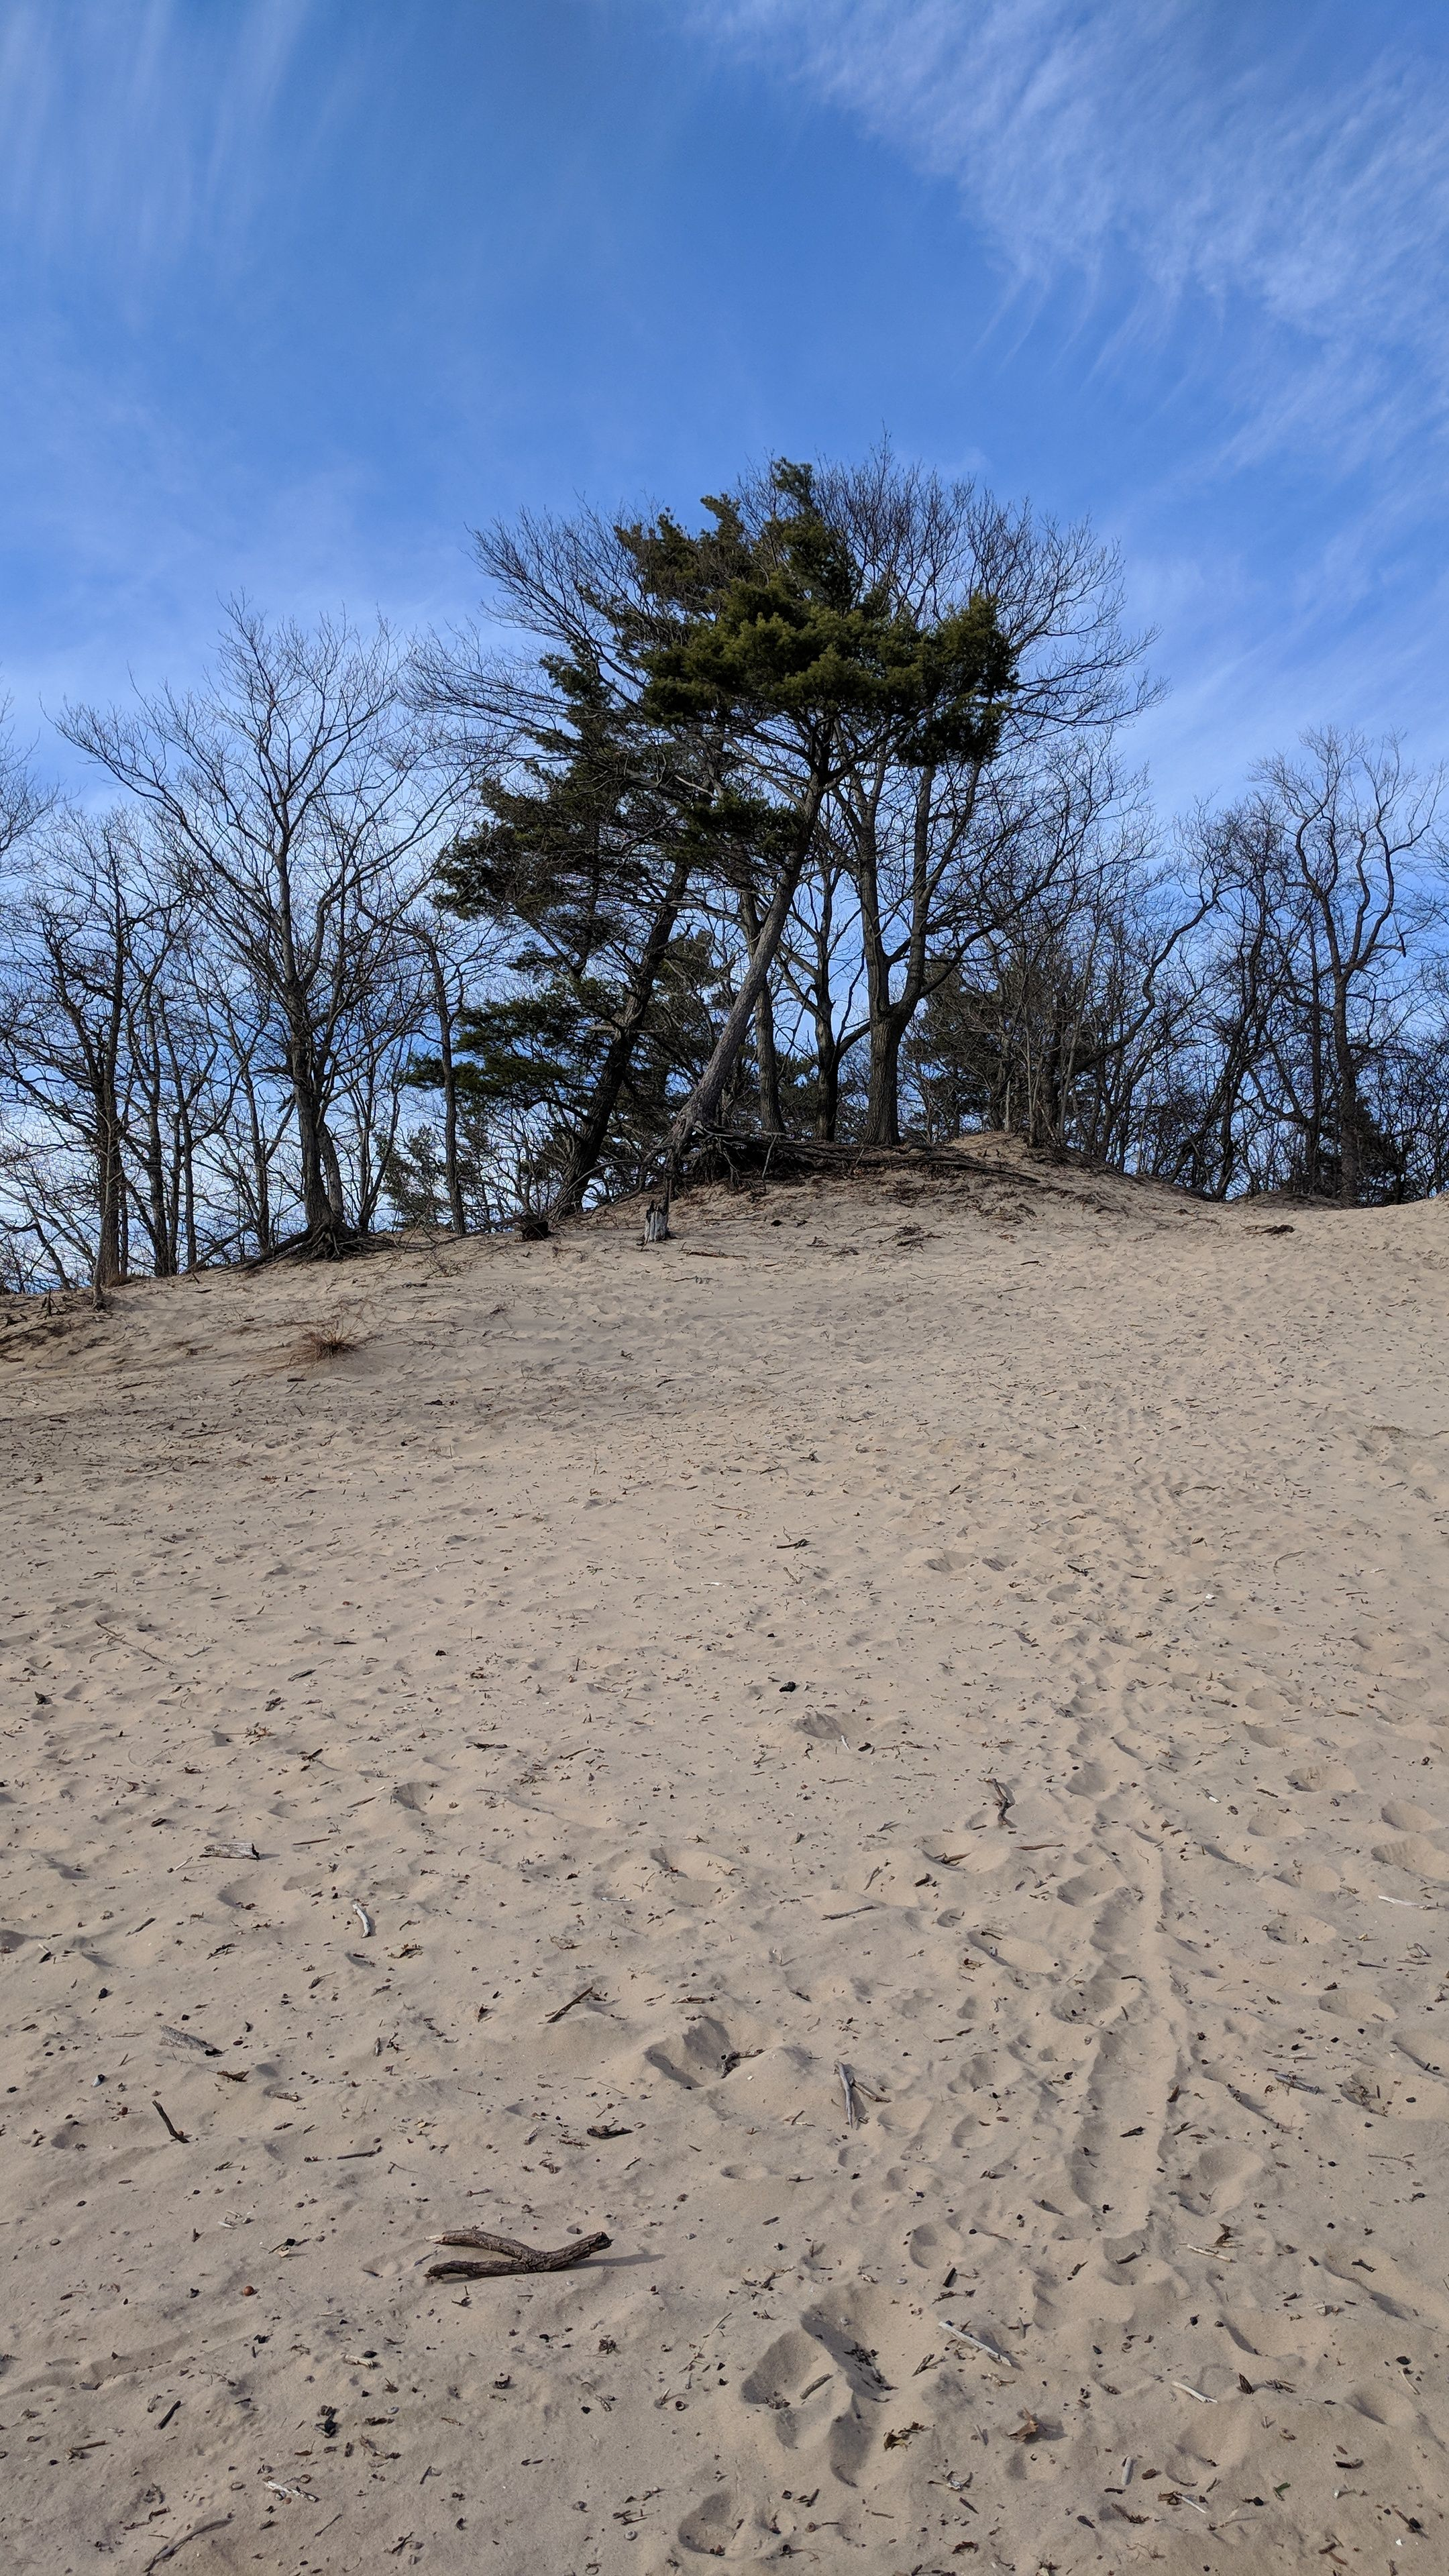 Pin by Kathi Millet on the dunes   The dunes, Outdoor, Water on Dune Outdoor Living  id=93976